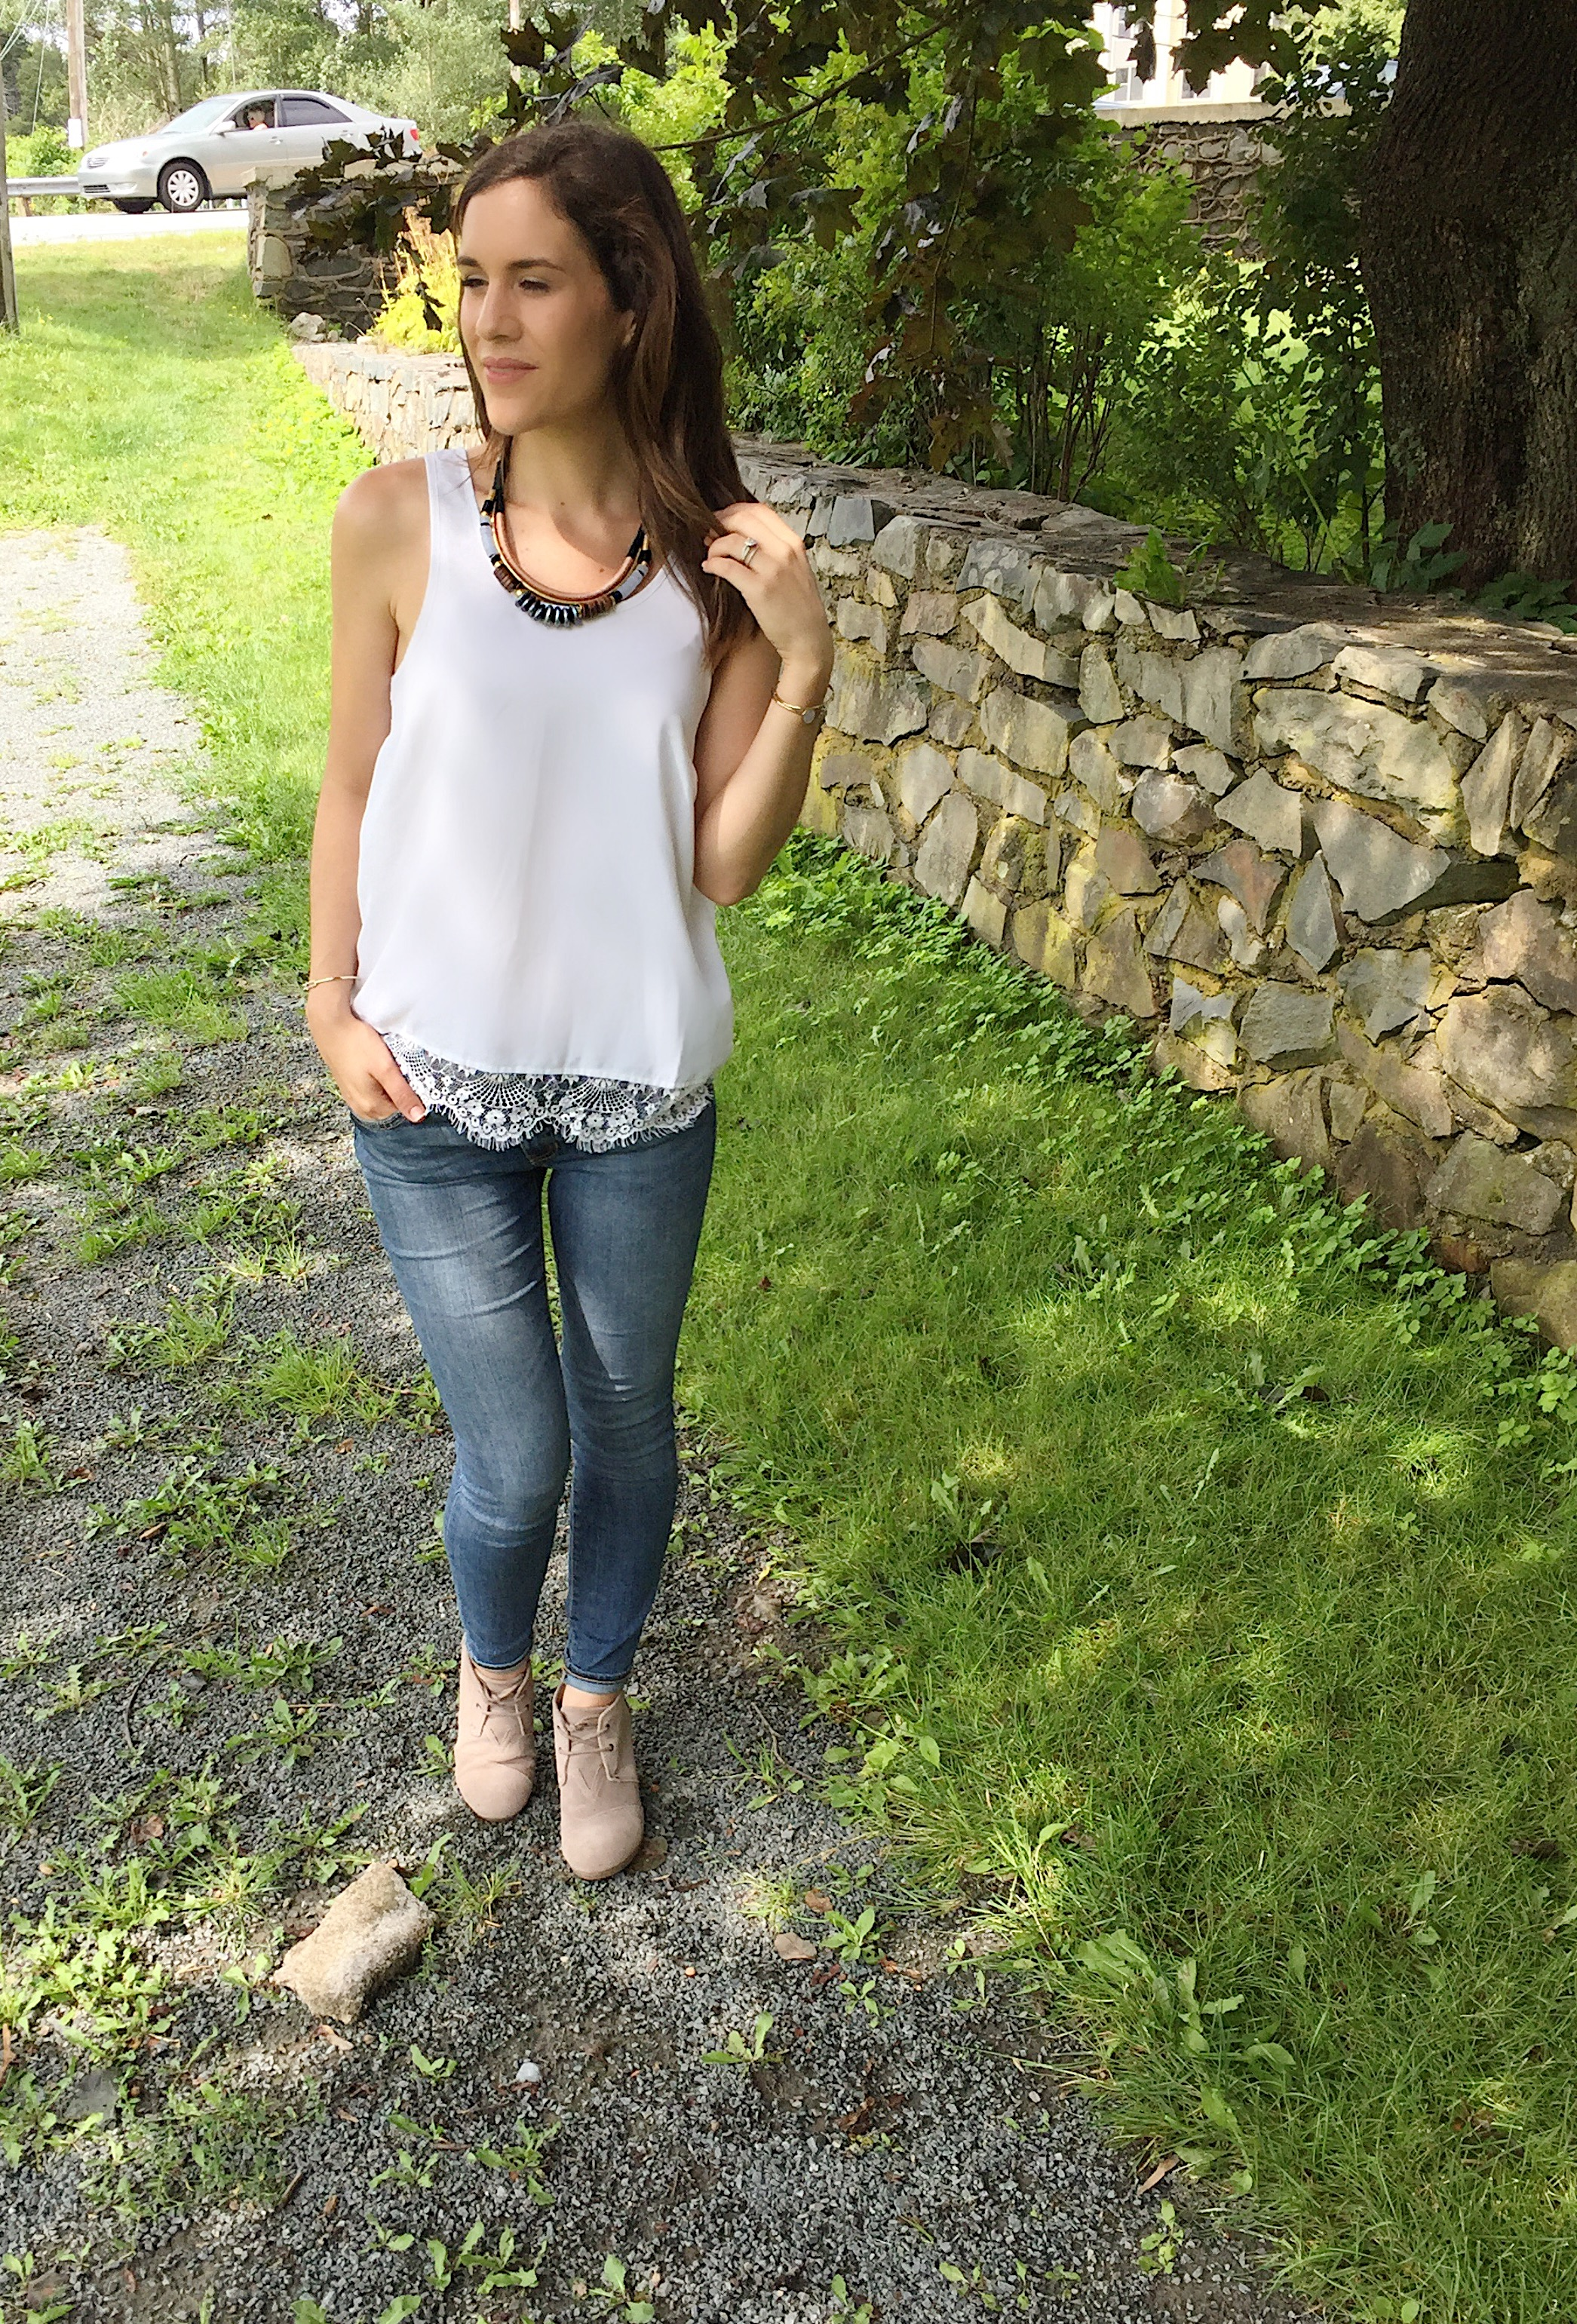 Denim & booties make this the perfect fall outfit in day 3 of my 5x5 style challenge